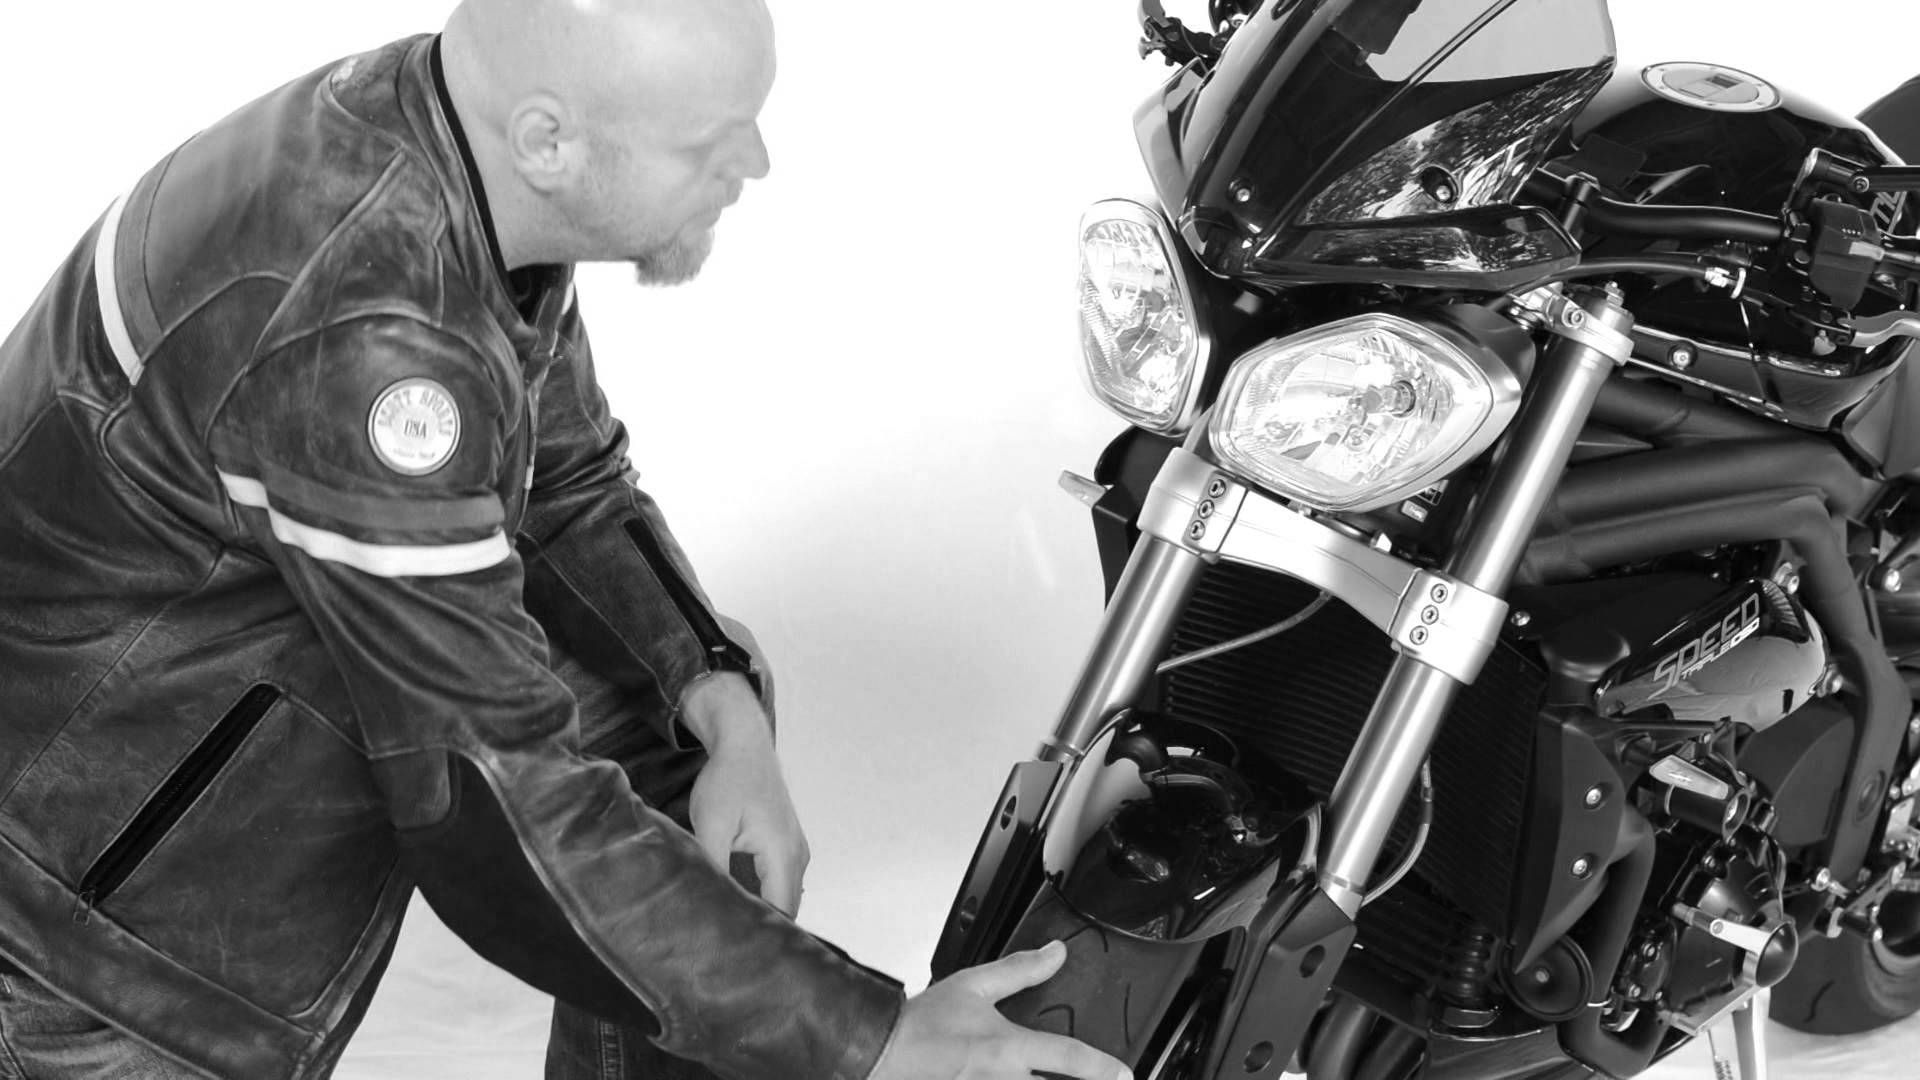 FIRST RIDE – 5 riders get on a Triumph Speed Triple for the first time (...